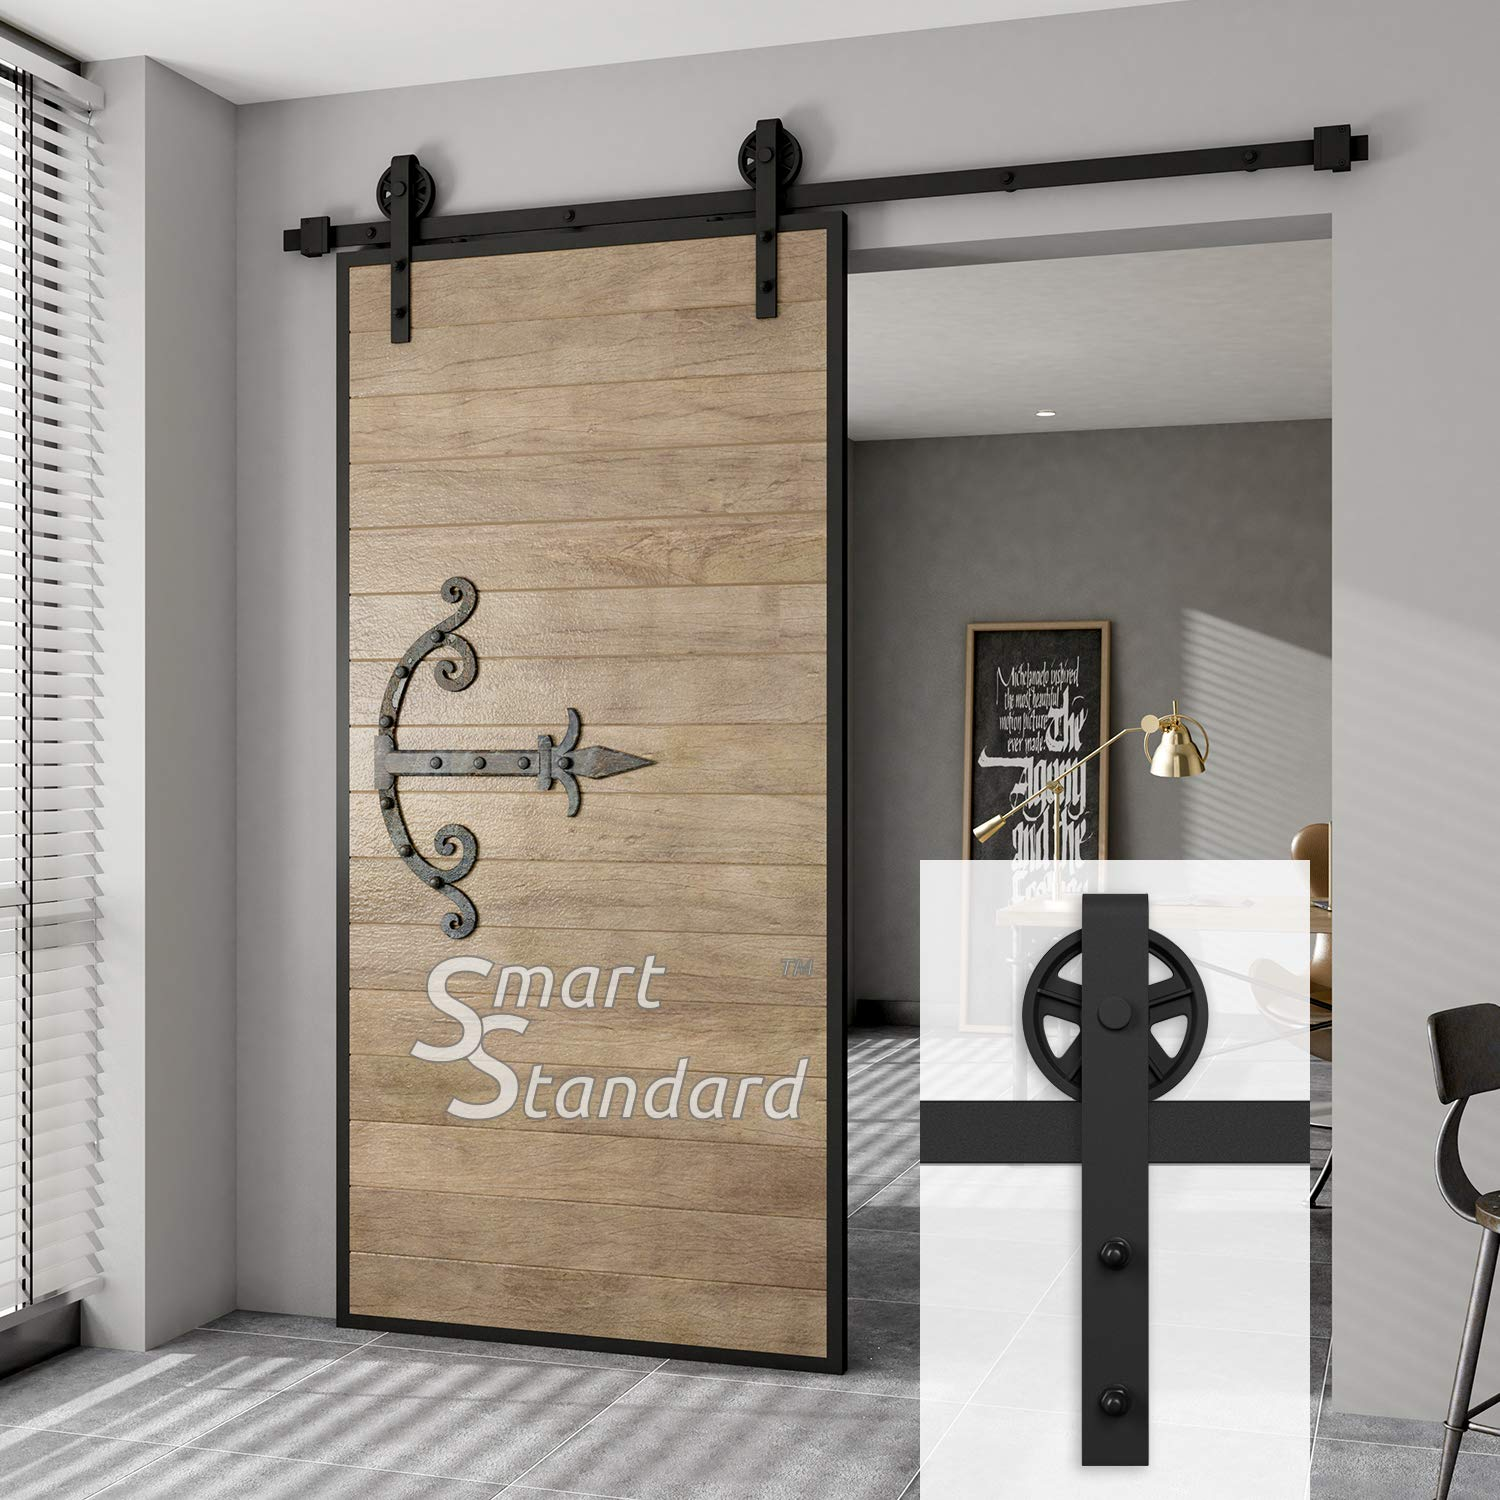 SMARTSTANDARD SDH0066BIGWHEELBK 6.6ft BigWheel Sliding Barn Door Hardware Kit,Black, Super Smoothly and Quietly, Simple and Easy to Install, Fit 36''-40'' Wide DoorPanel/Big Wheel Hangers